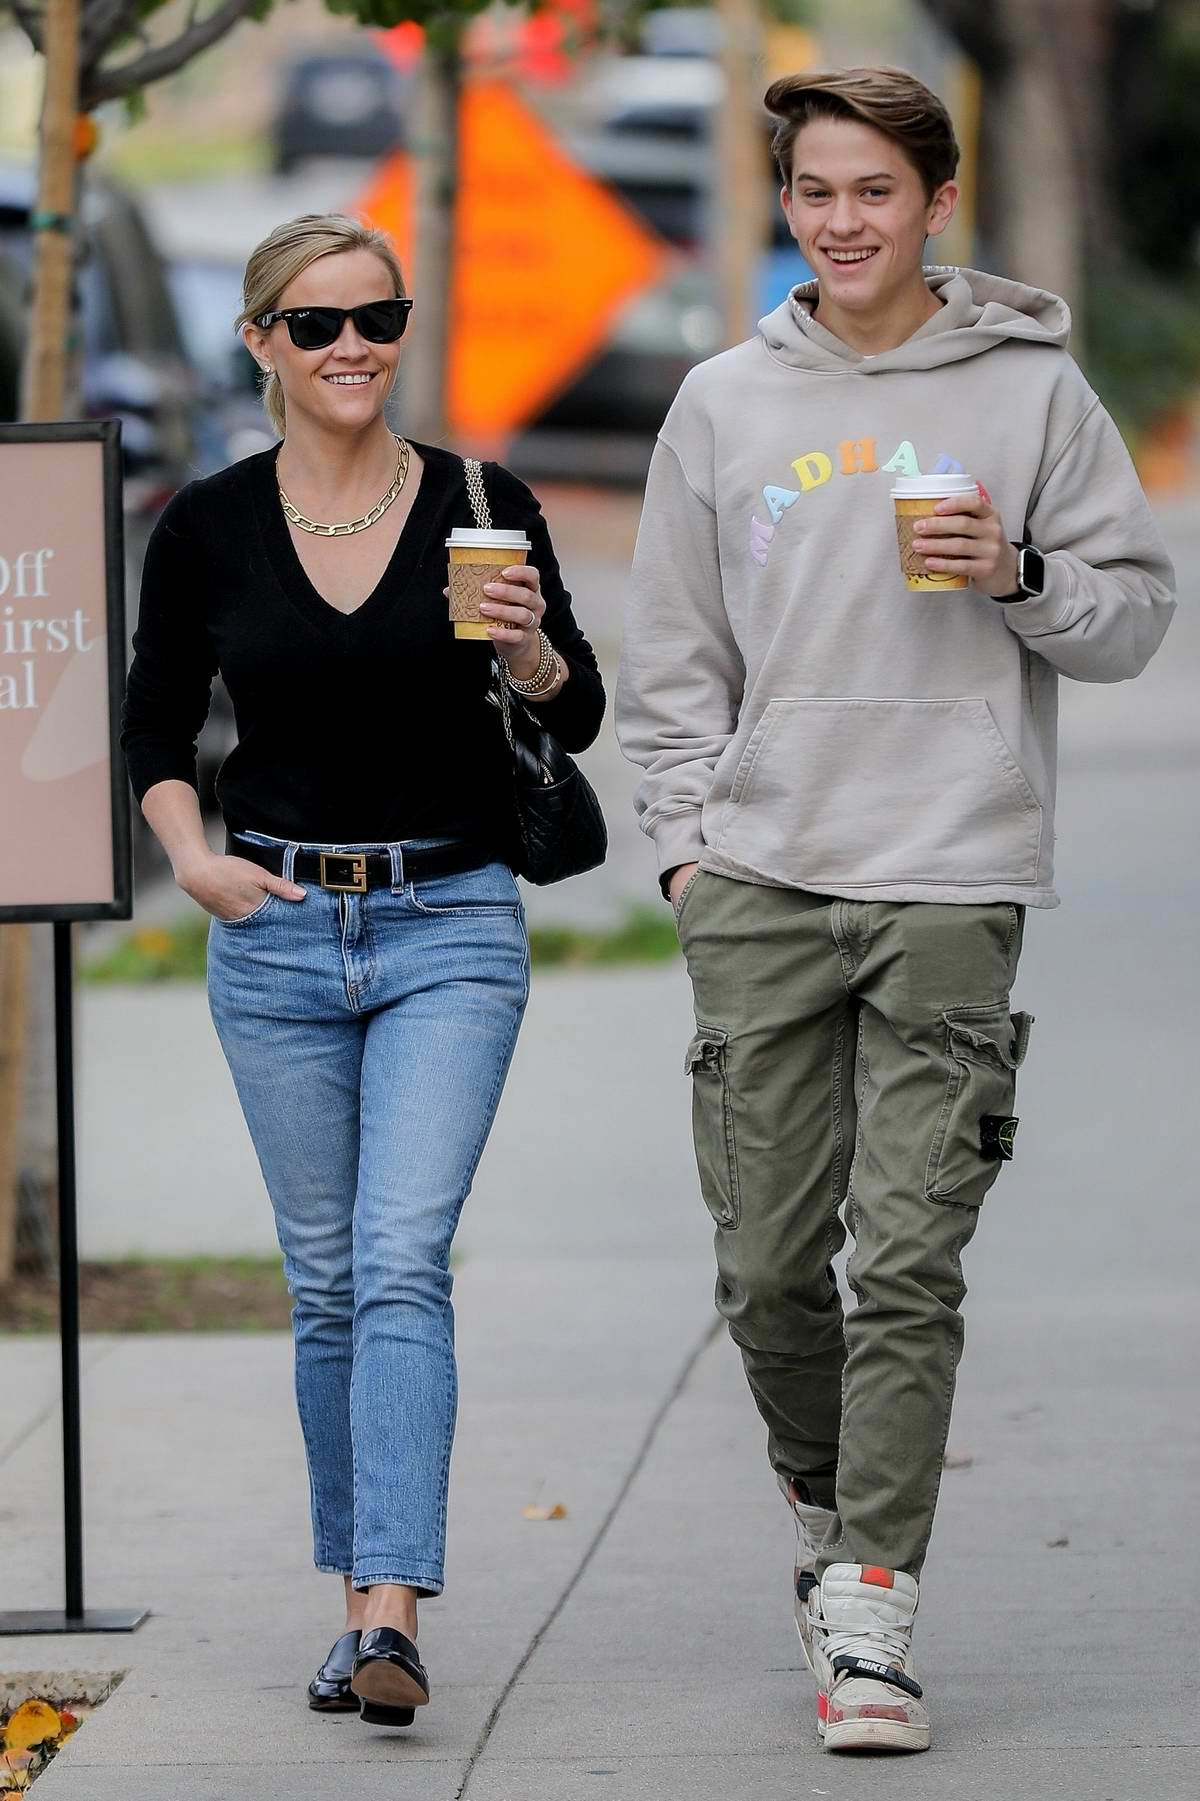 Reese Witherspoon has lunch with her son Deacon Phillippe at Le Pain Quotiden in Brentwood, California